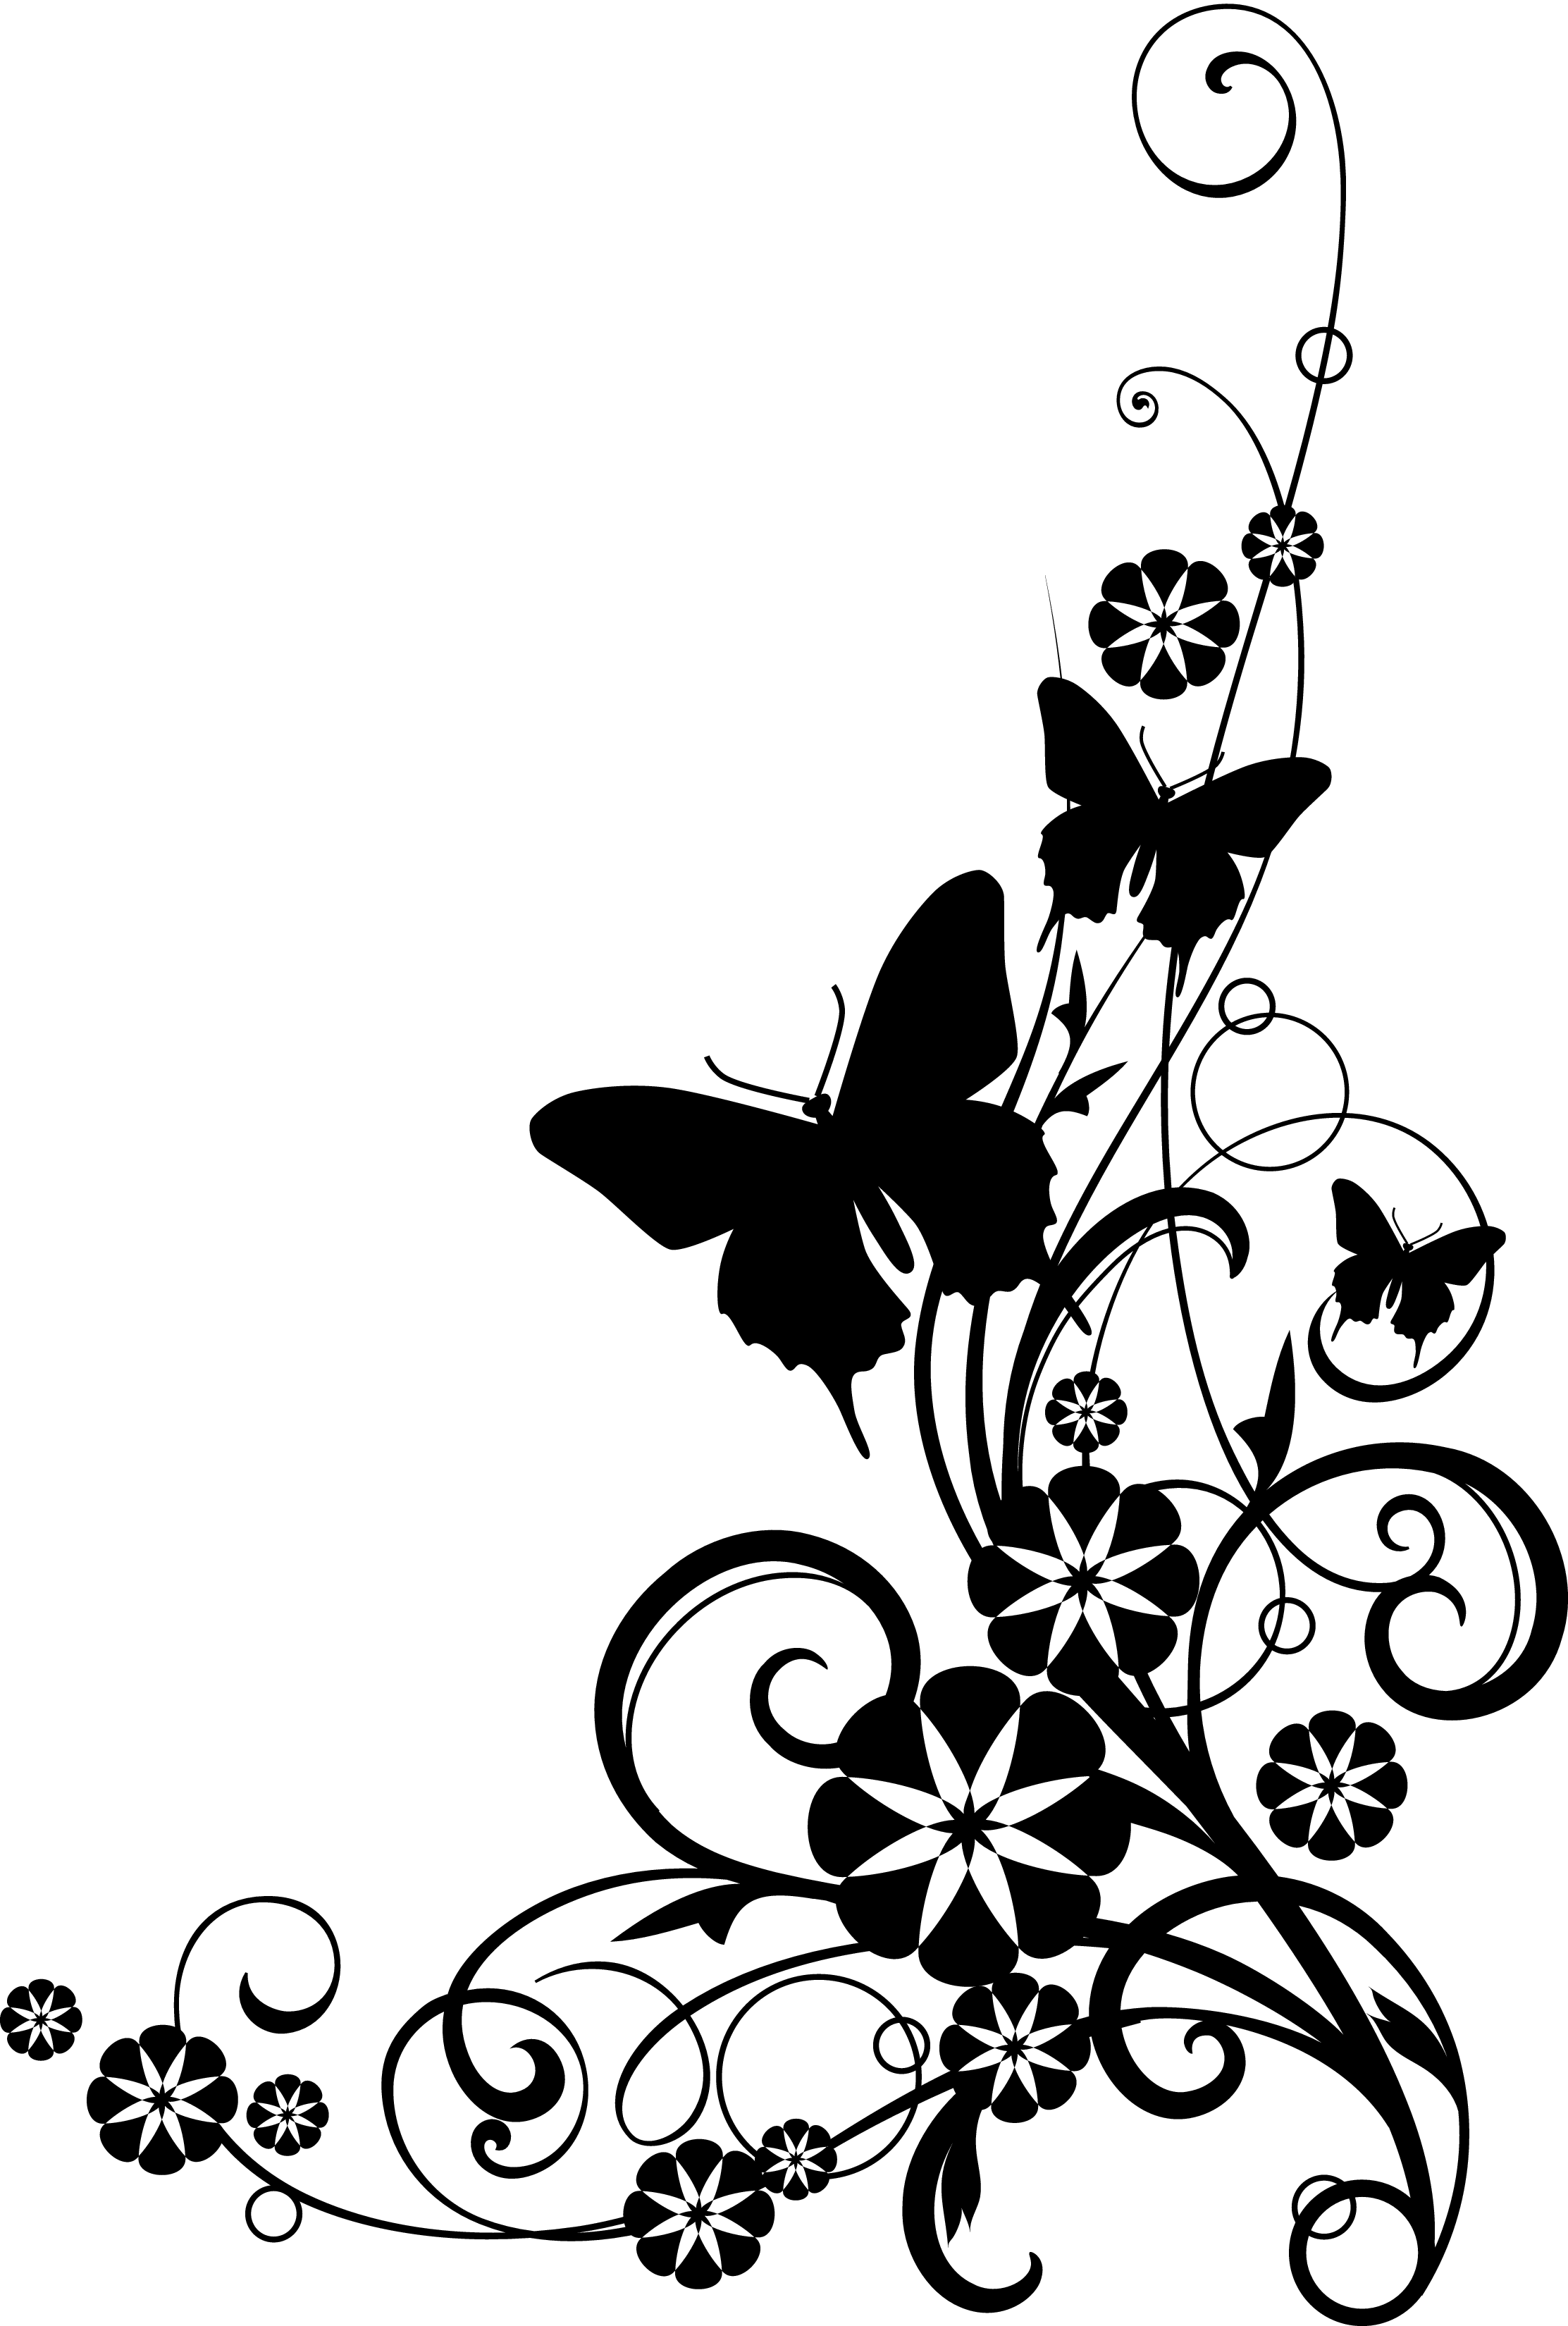 Flowers Border Clipart Black And White | Clipart Panda ...